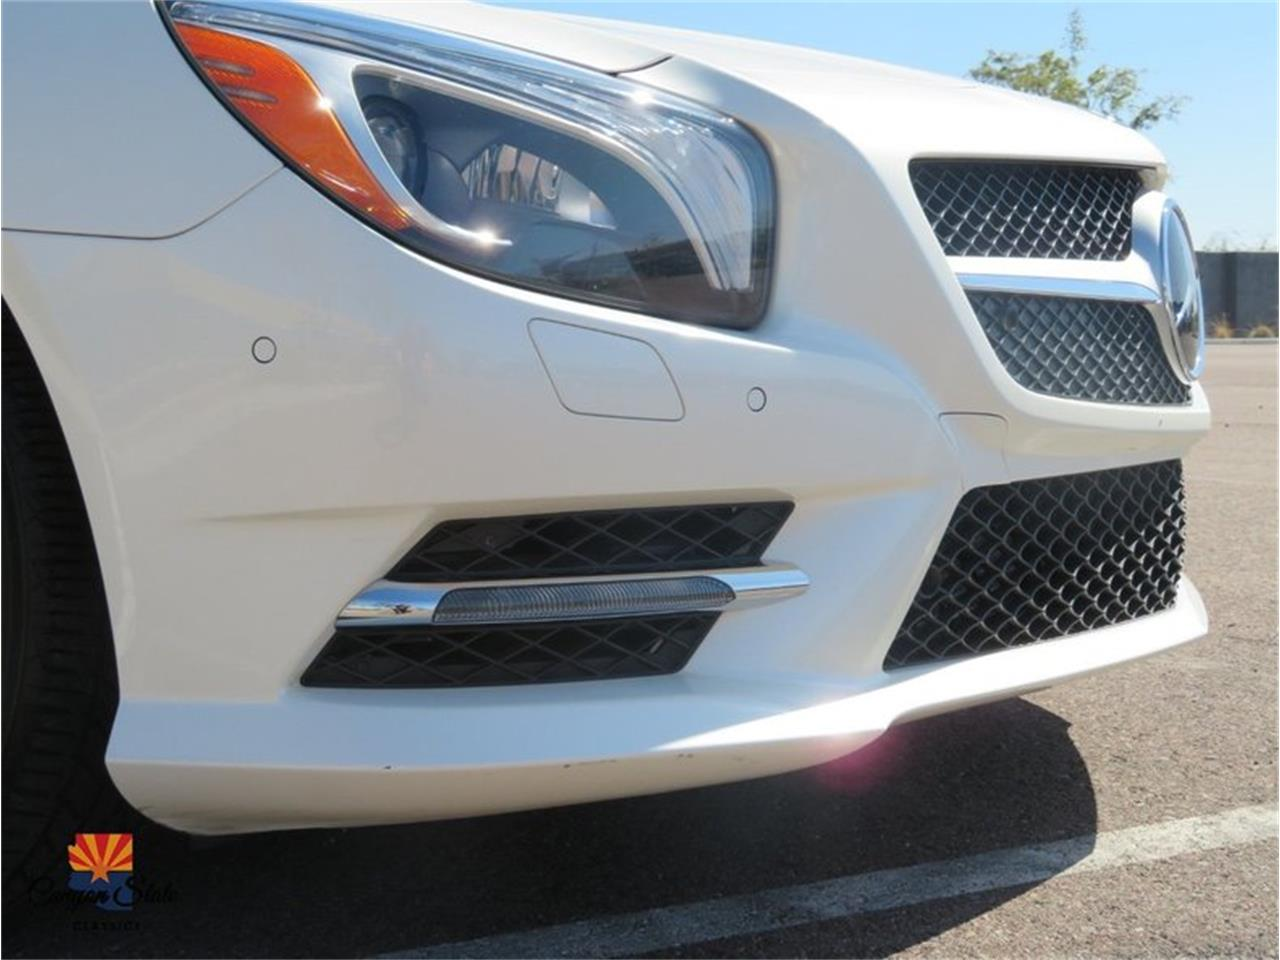 2013 Mercedes-Benz SL-Class for sale in Tempe, AZ – photo 34